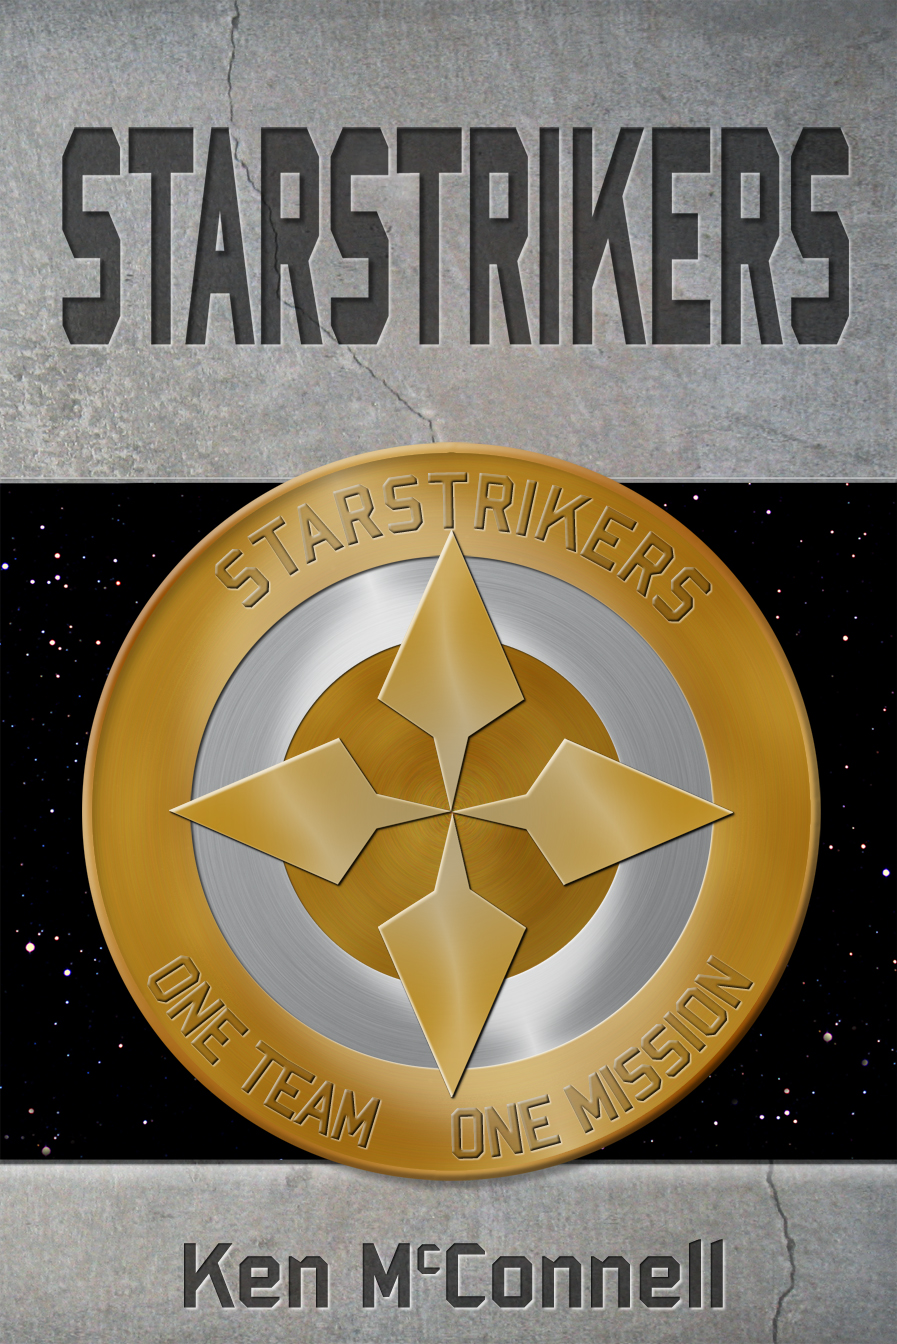 STARSTRIKERS by Ken McConnell